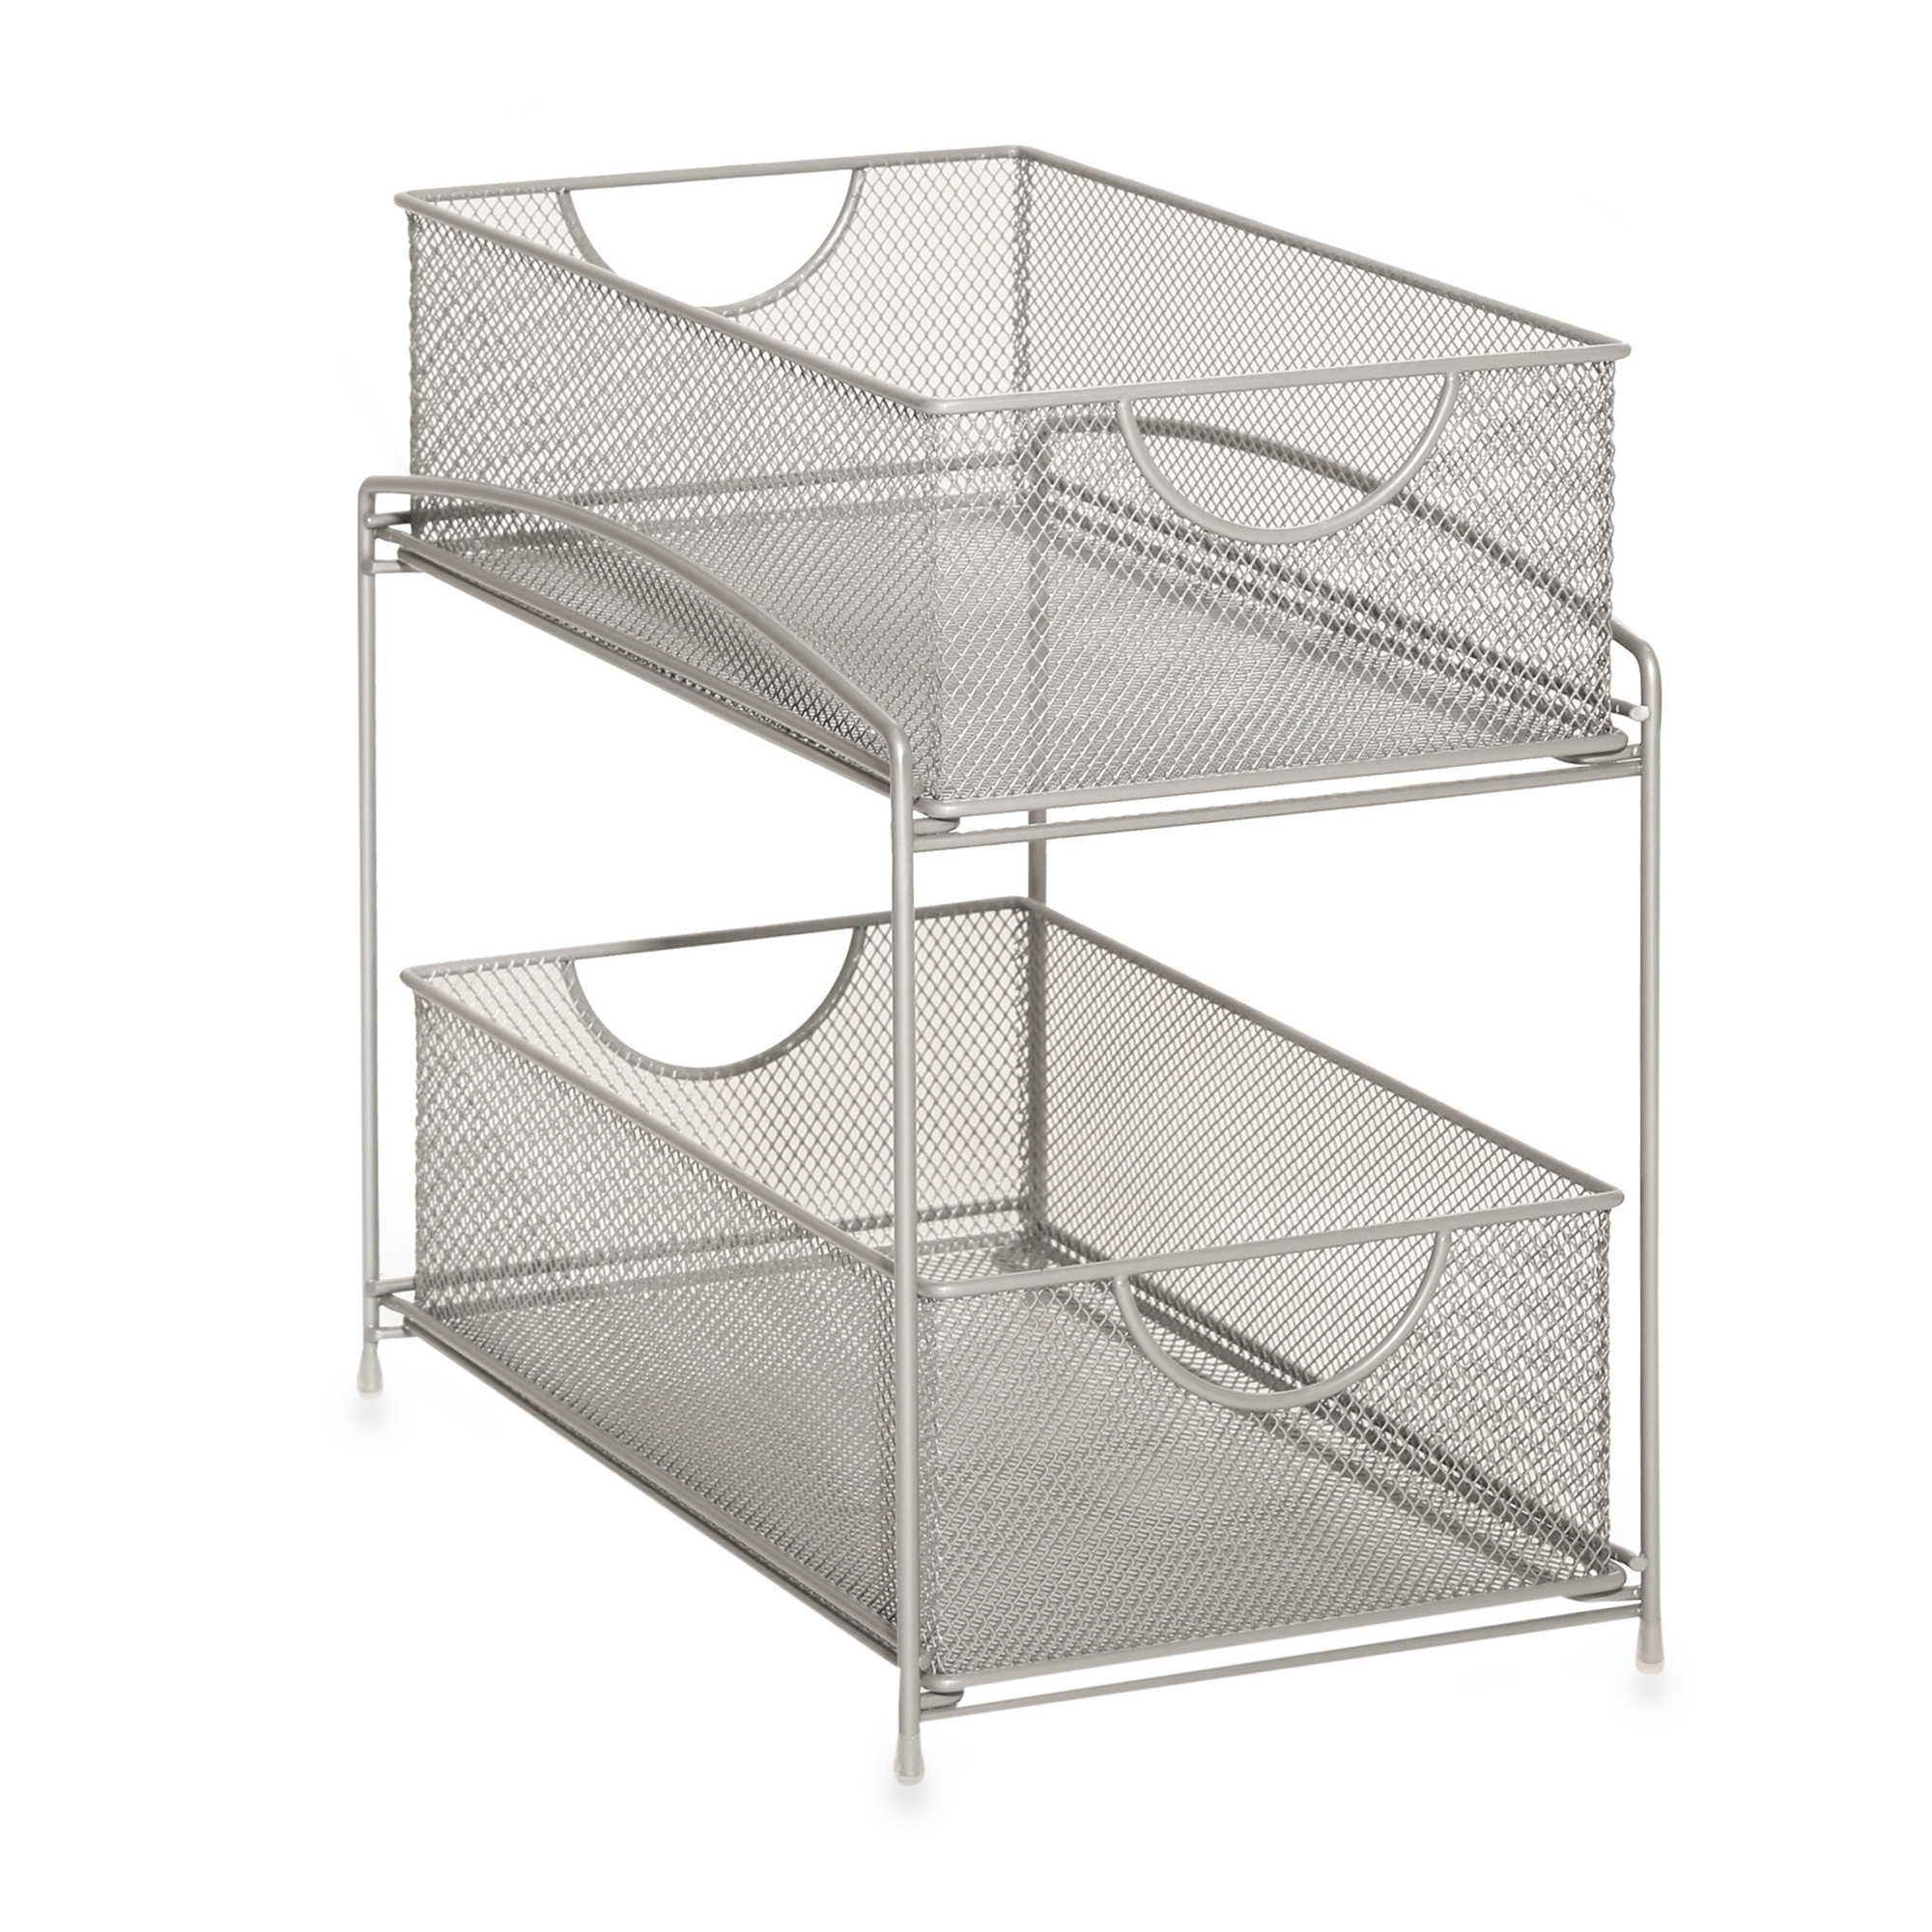 Org 2 Tier Mesh Double Sliding Cabinet Basket In Silver